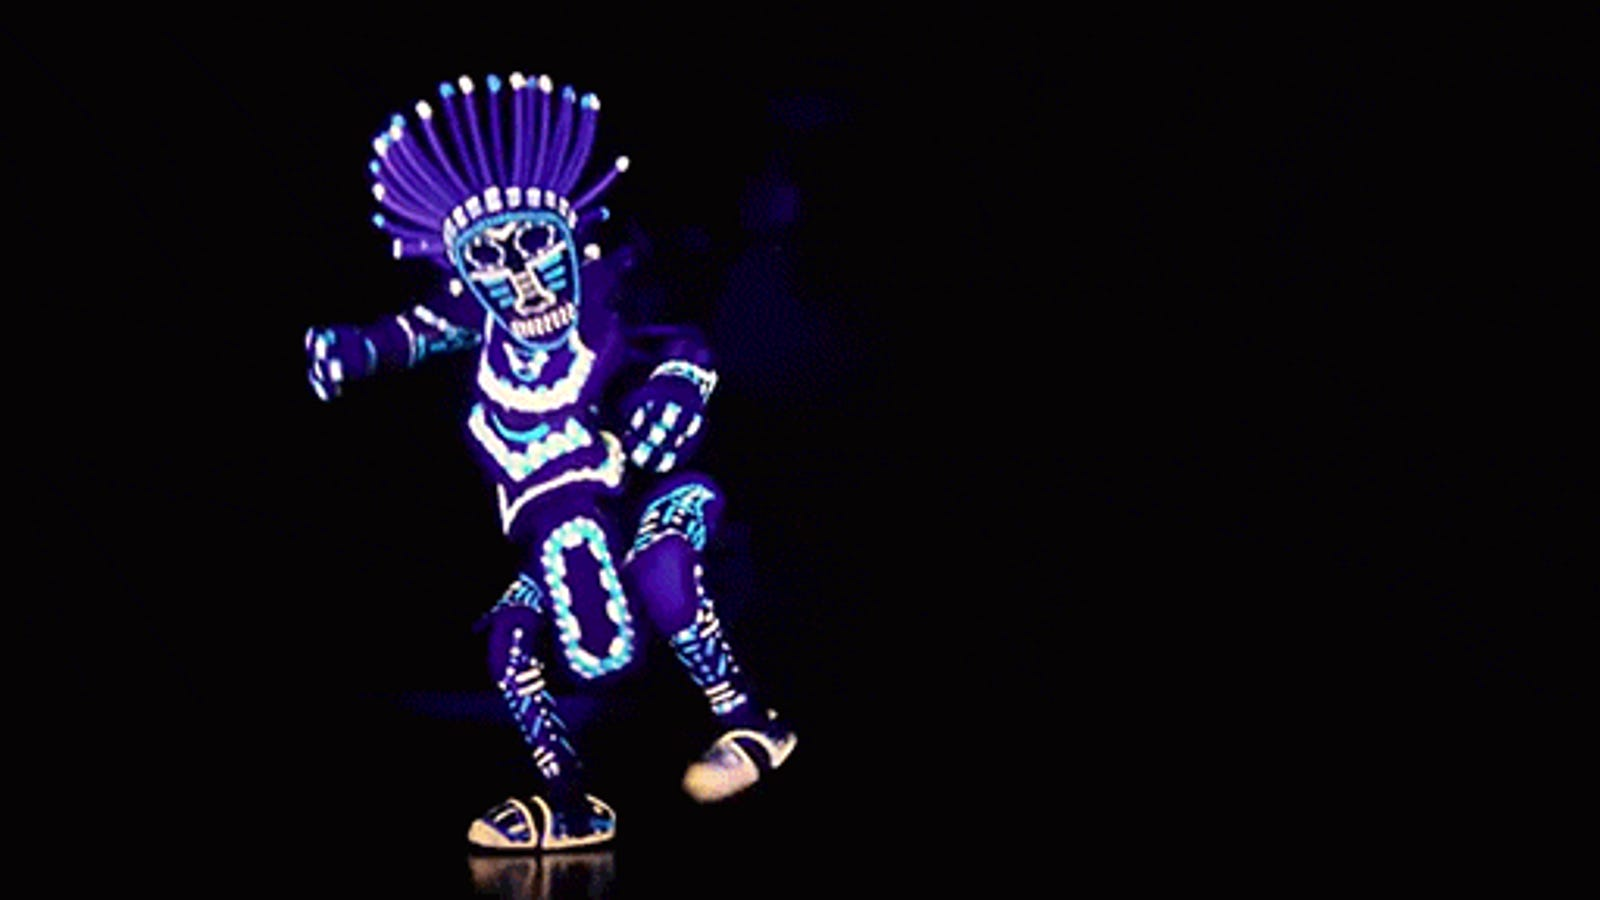 This Glow in the Dark Finger Puppet Dance Is Unreal